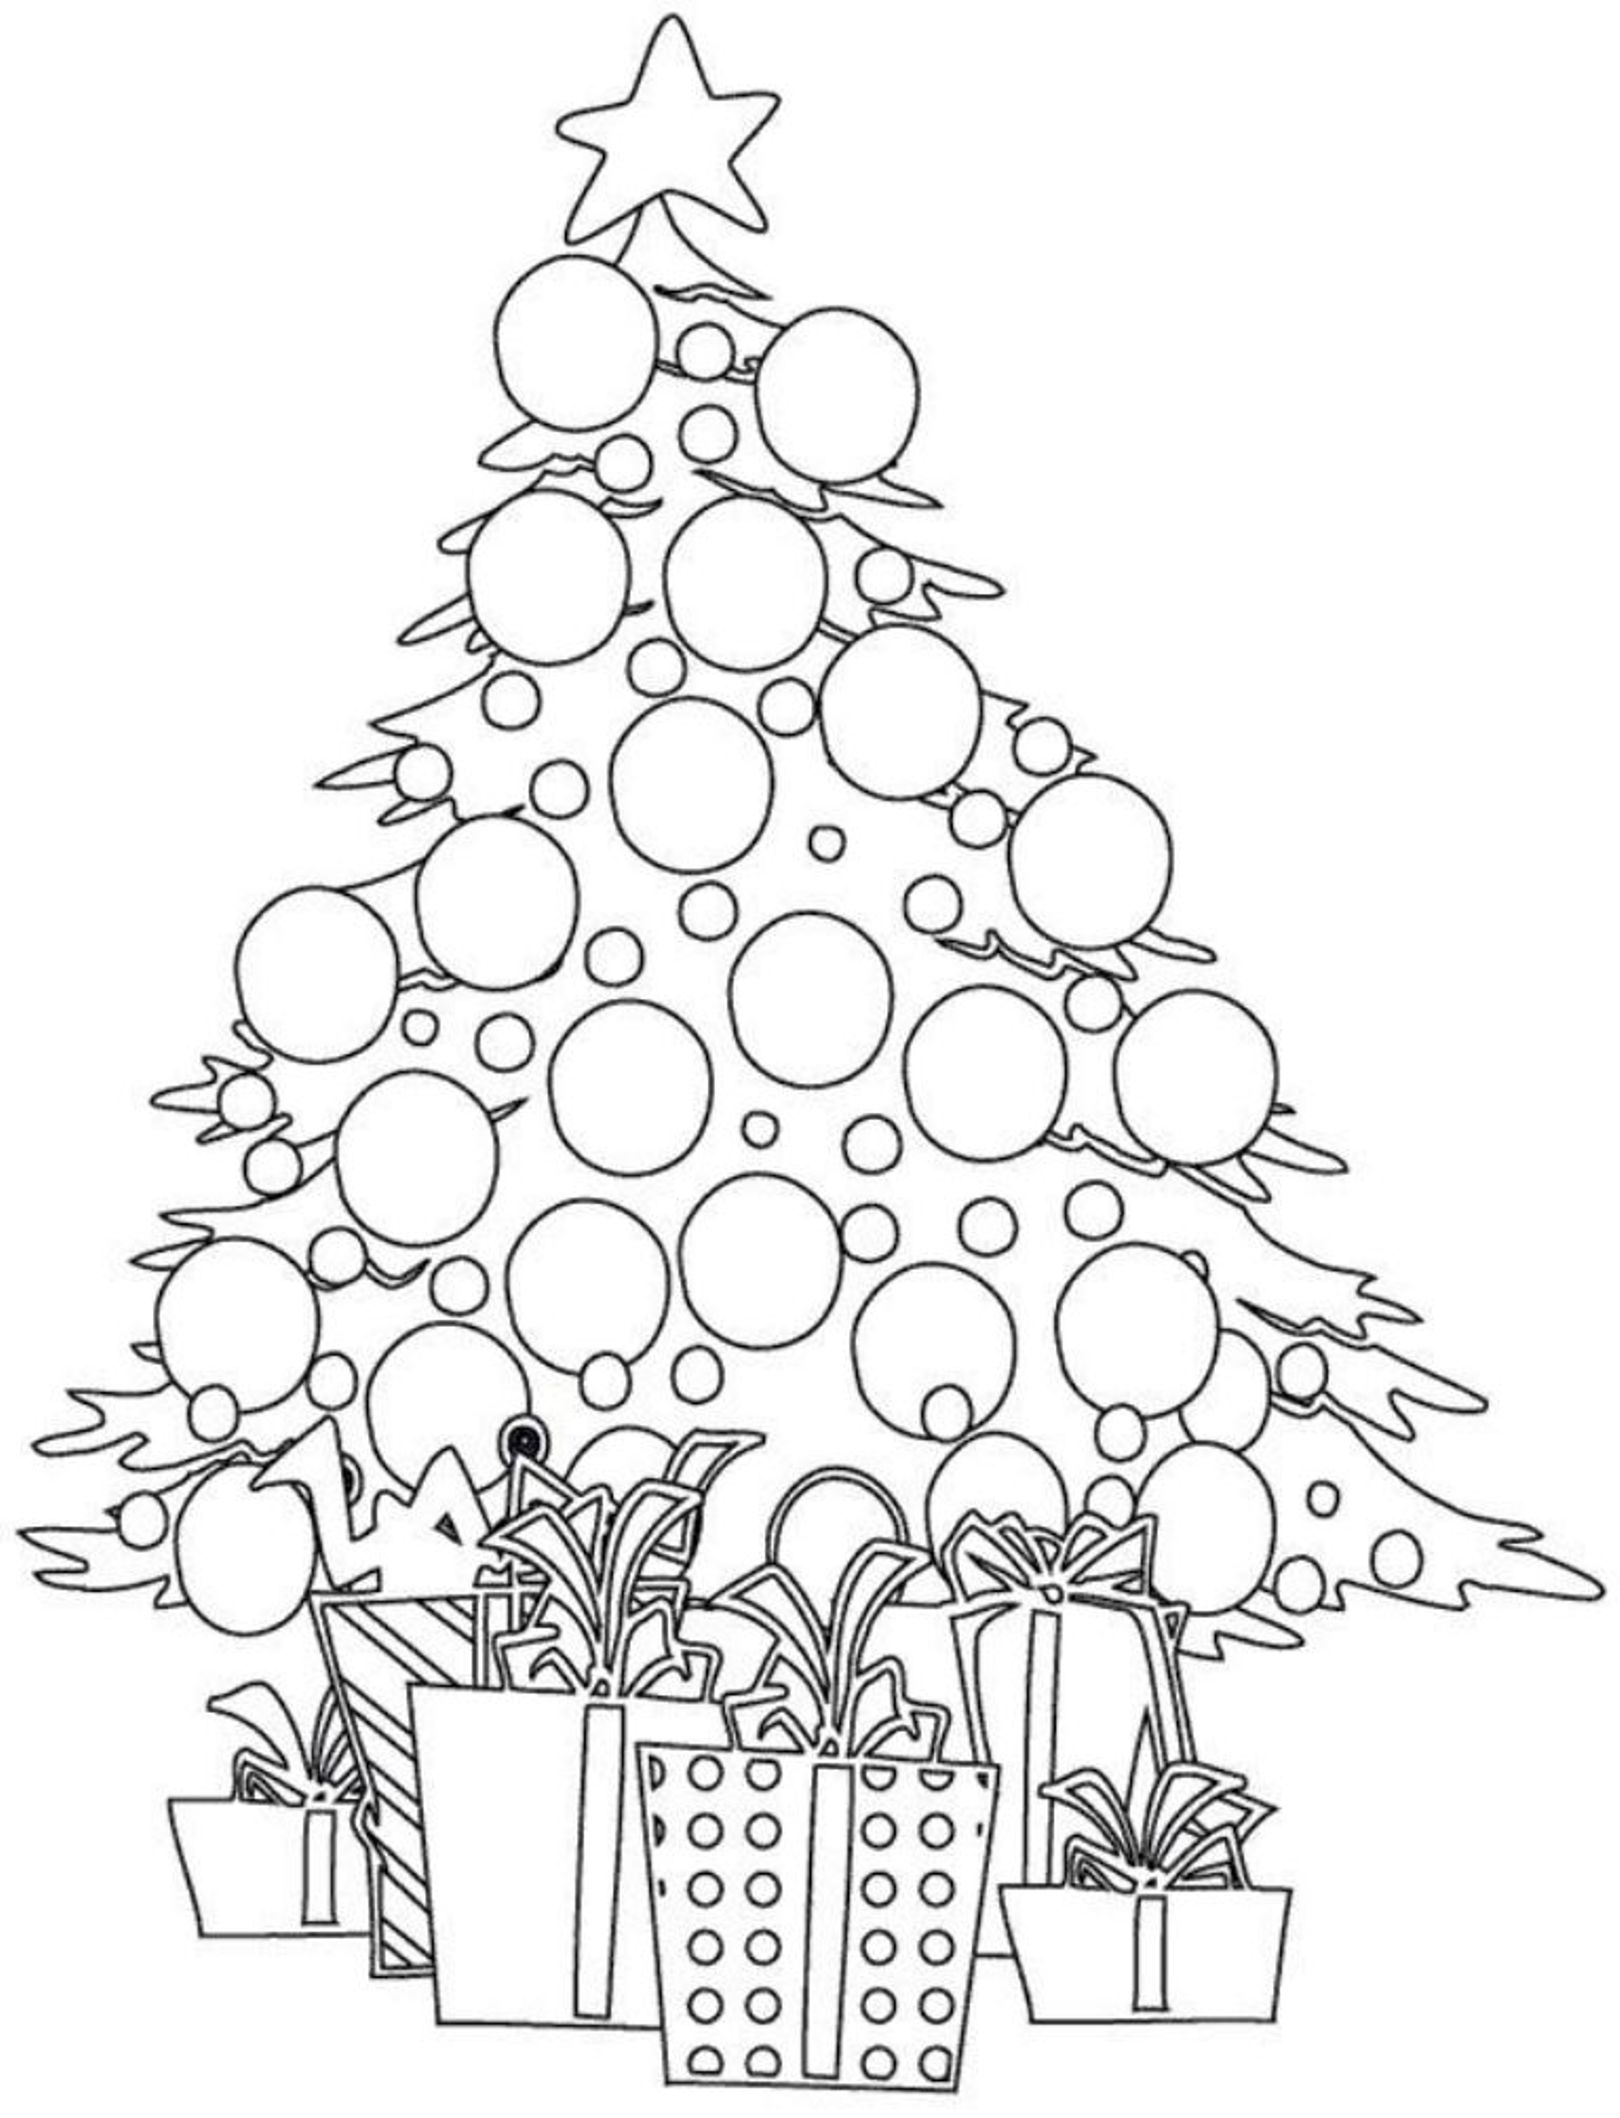 1620x2118 Christmas Tree With Presents Coloring Pages For Adults Download